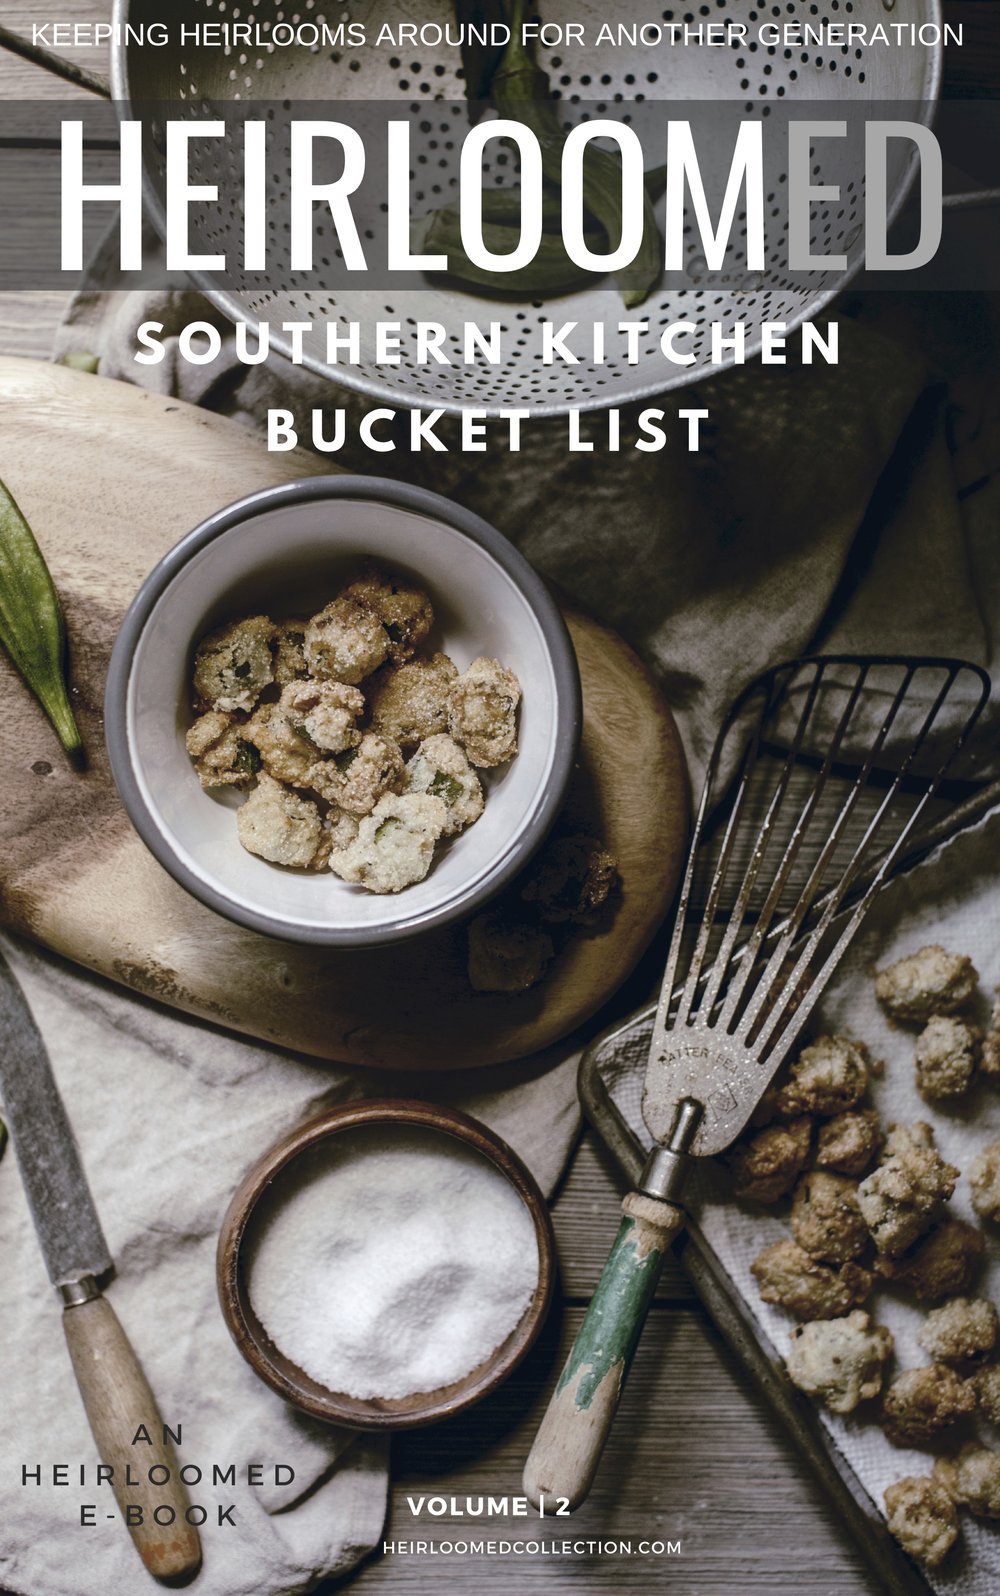 SOUTHERN KITCHEN BUCKET LIST EBOOK V2.jpg